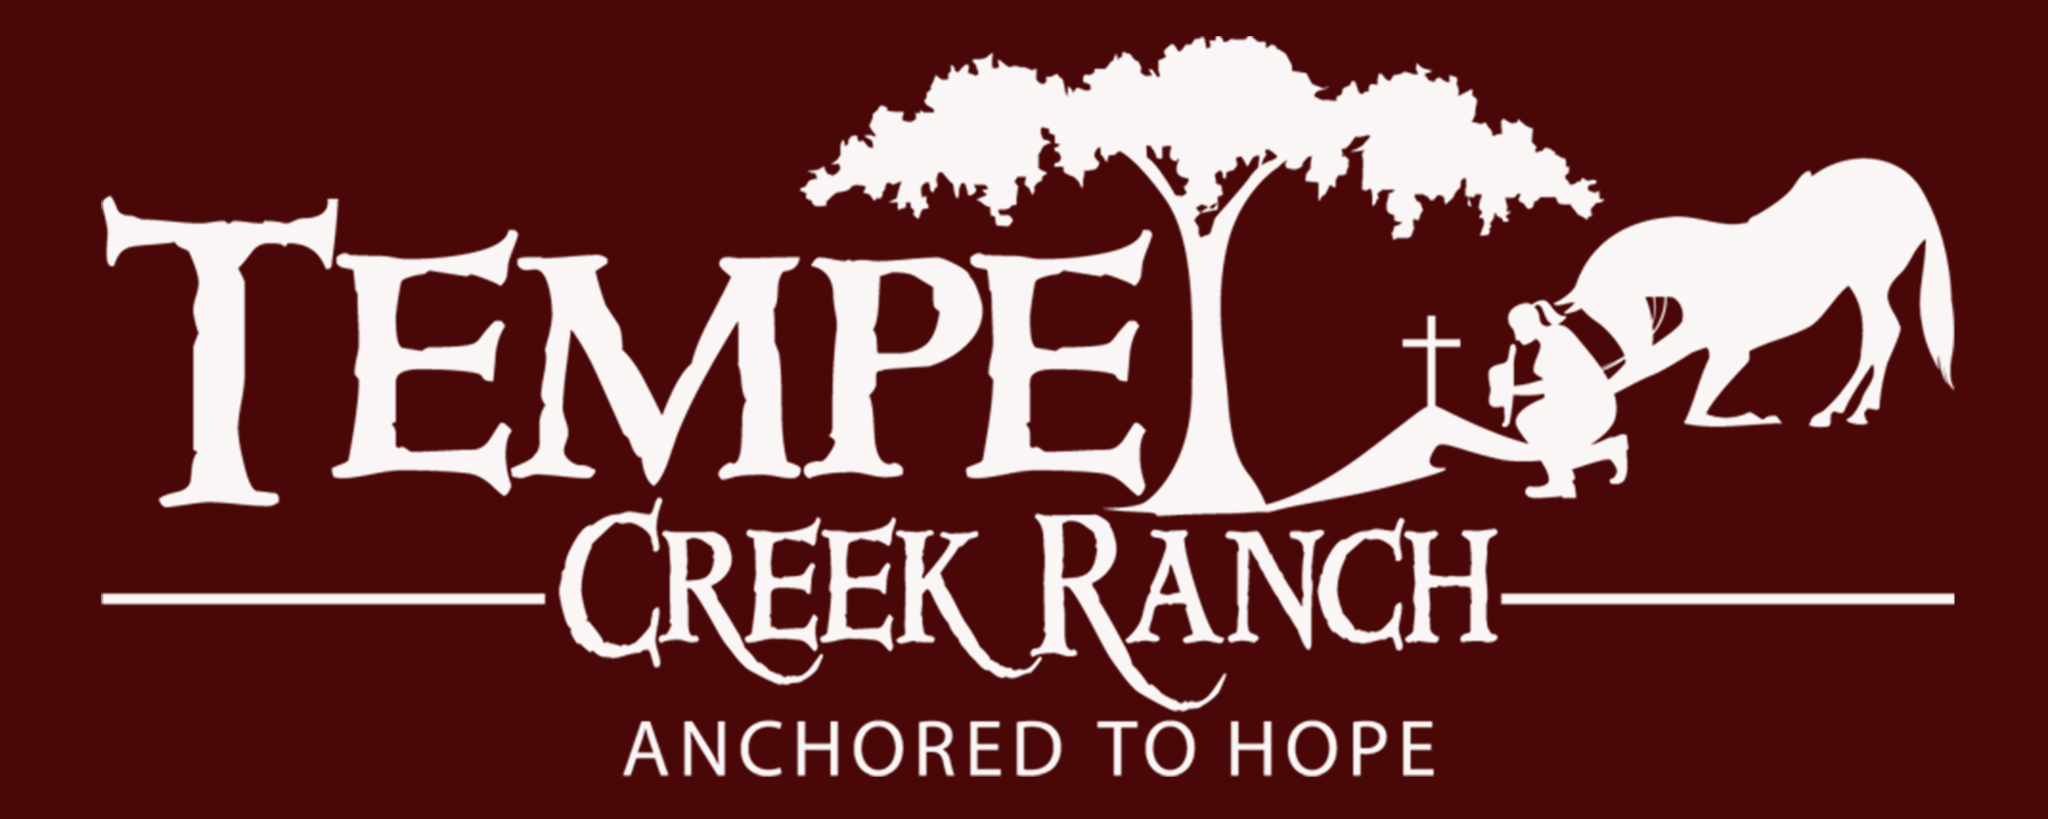 Tempe Creek Ranch Logo